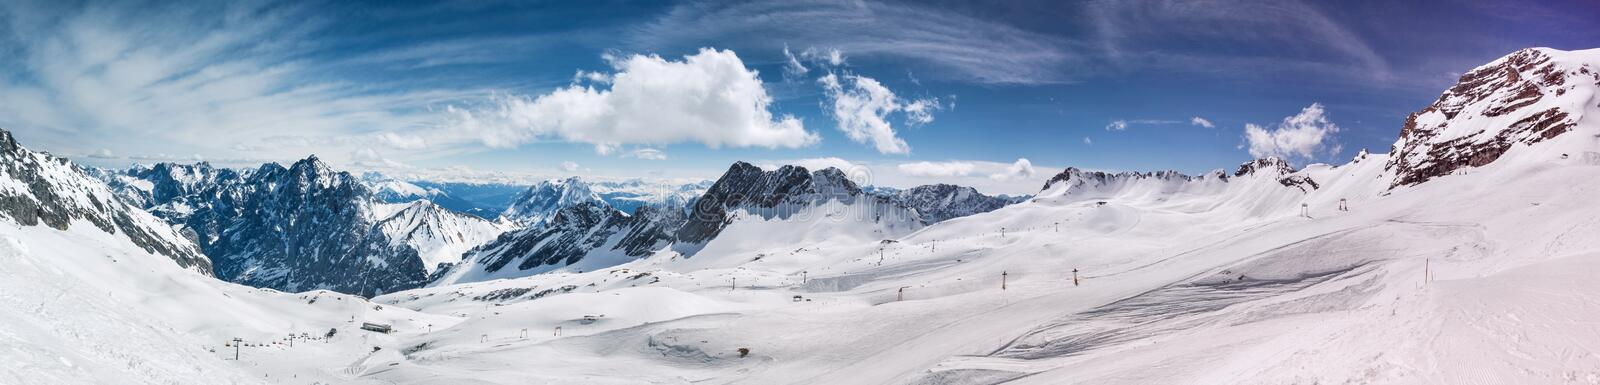 Schneeferner glacier and the alps in the background high definition panorama in the winter. The schneeferner glacier and the alps in the background high stock photo